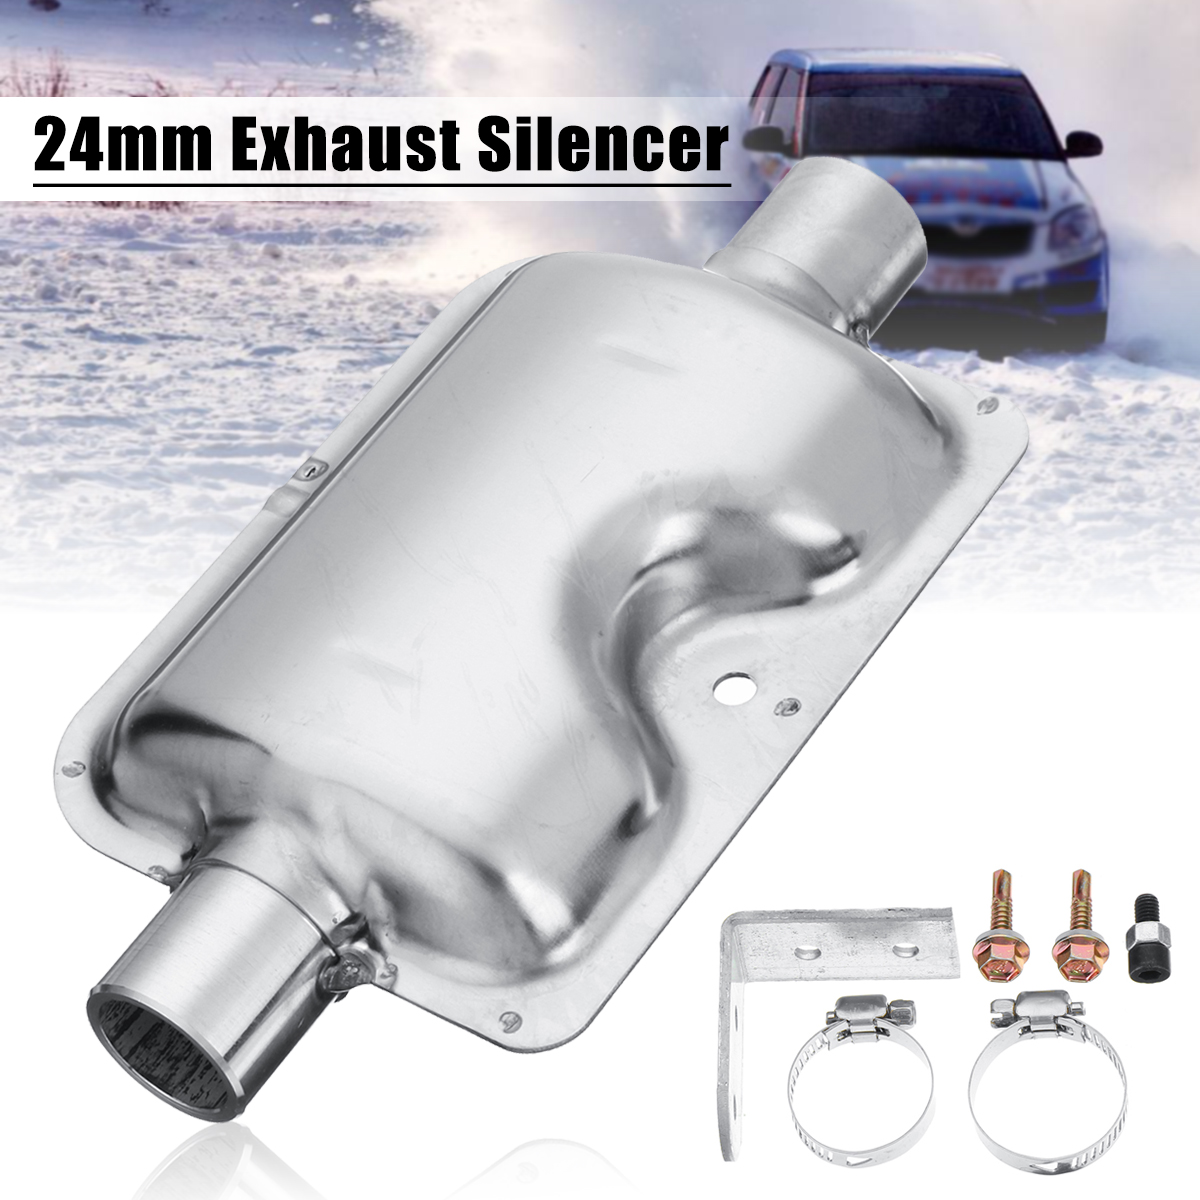 24mm Pipe Silencer Exhaust Muffler Clamps Bracket For Ebespacher Diesel Heater